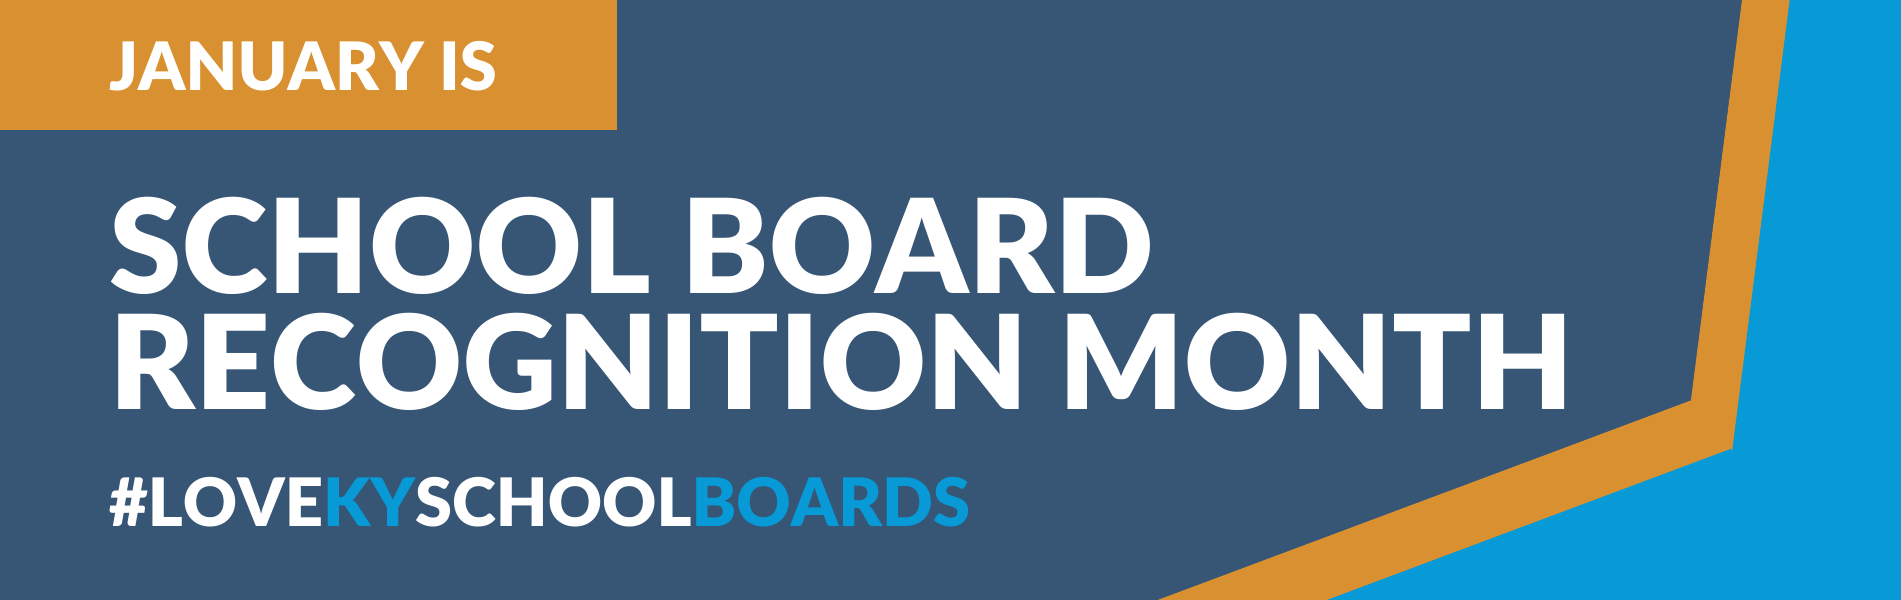 School Board Recognition Month tool kit 2021